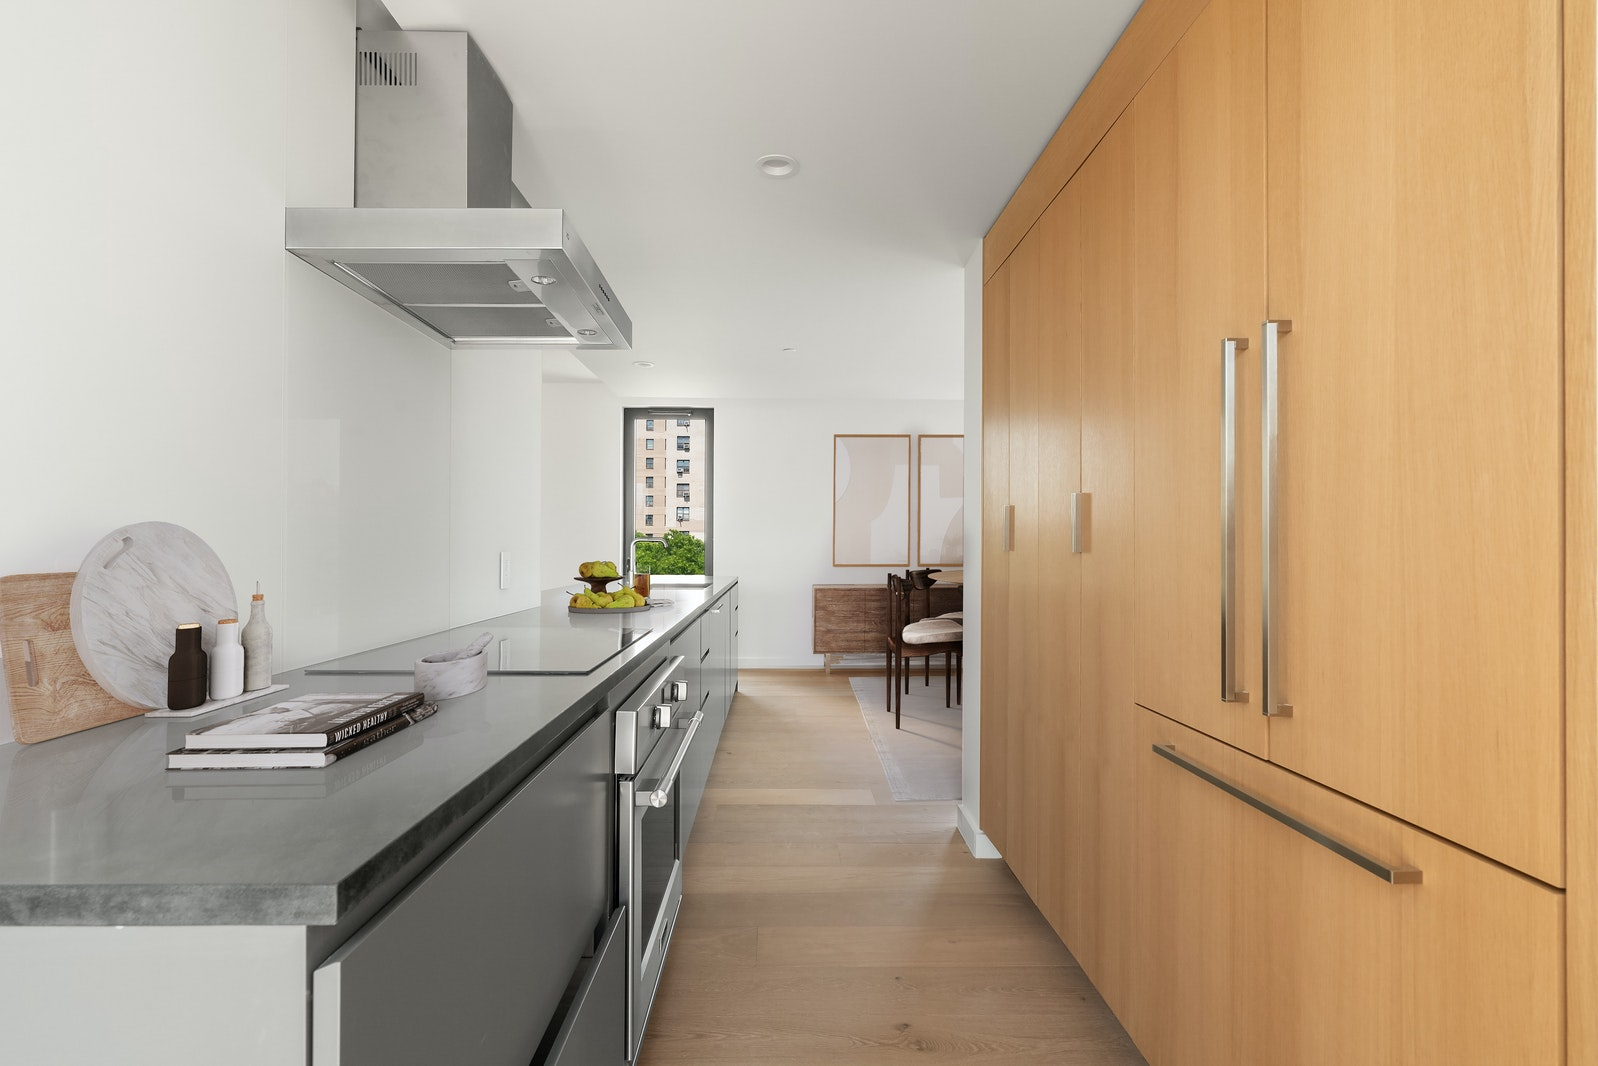 8 St Marks Place Pha, Boerum Hill, Brooklyn, NY, 11217, $2,495,000, Property For Sale, Halstead Real Estate, Photo 2